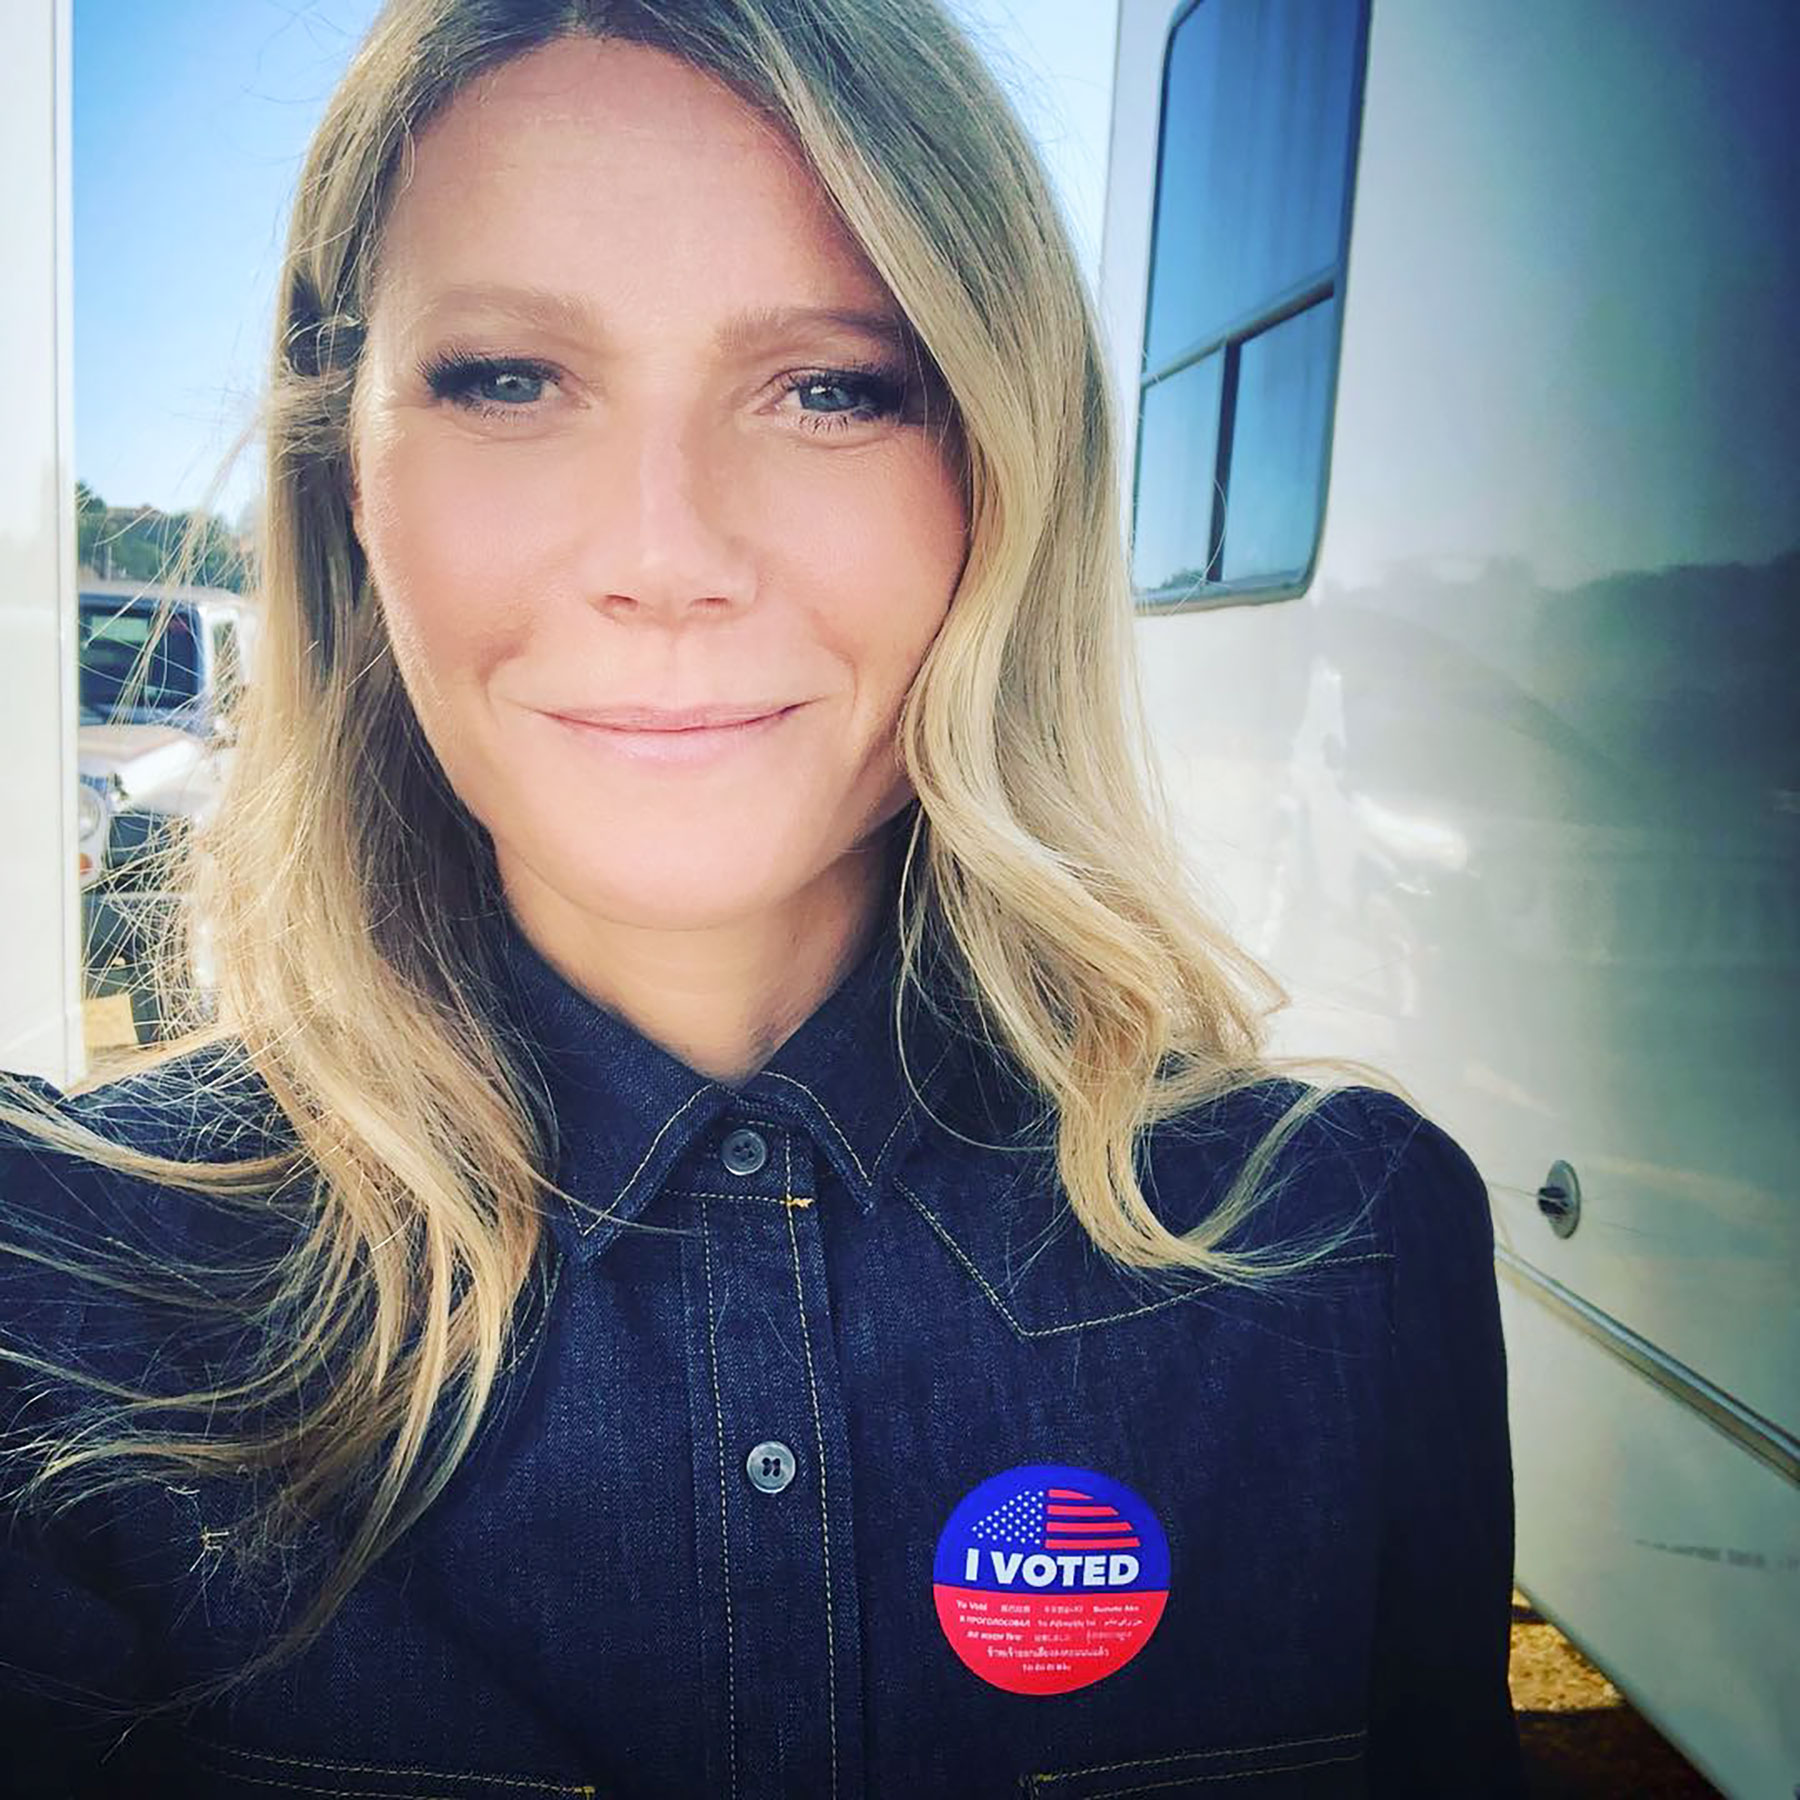 https://www.instagram.com/p/BpzwgZYh-GD/Gwyneth Paltrow/Instagram